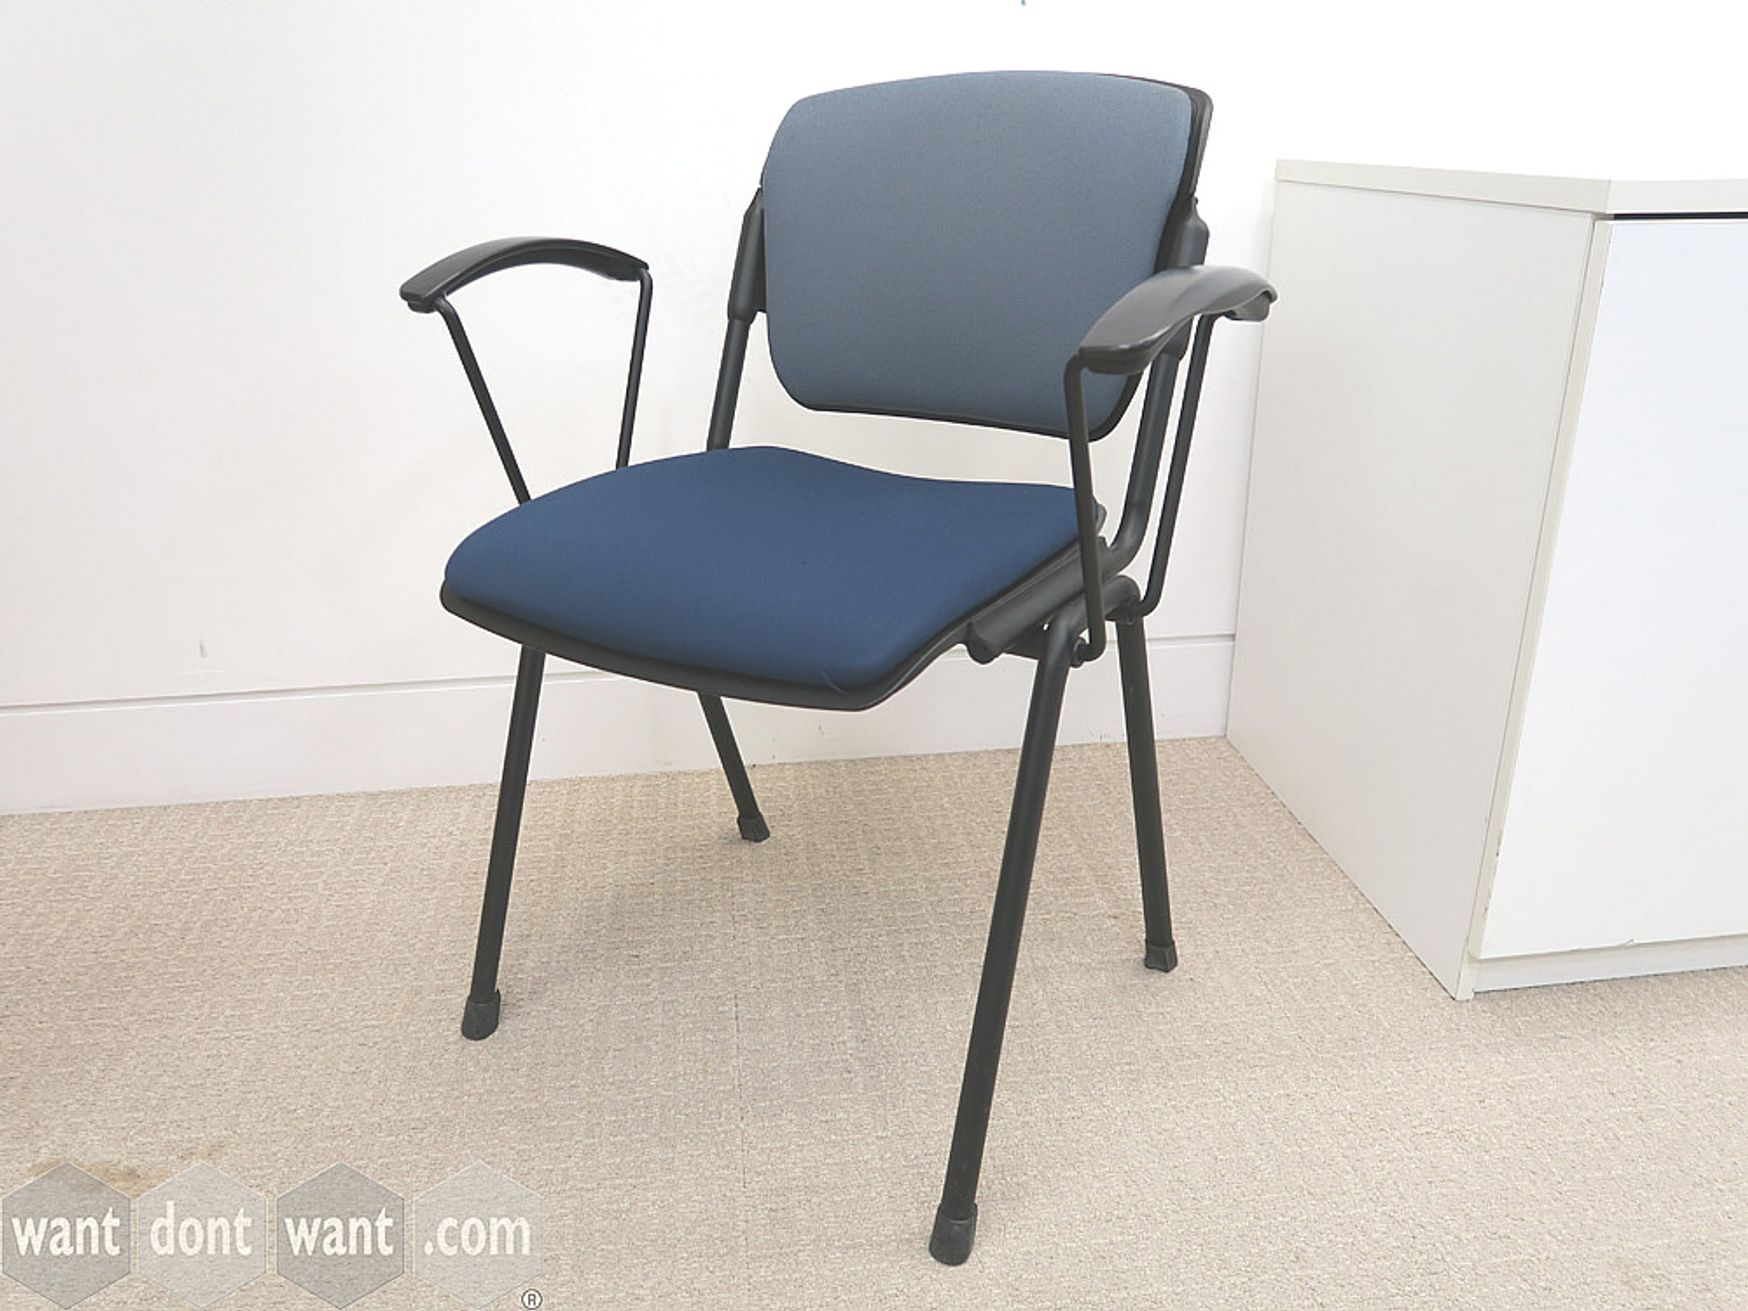 Used Senator Torasen Multi-Purpose Stacking Chair with Upholstered seat and back